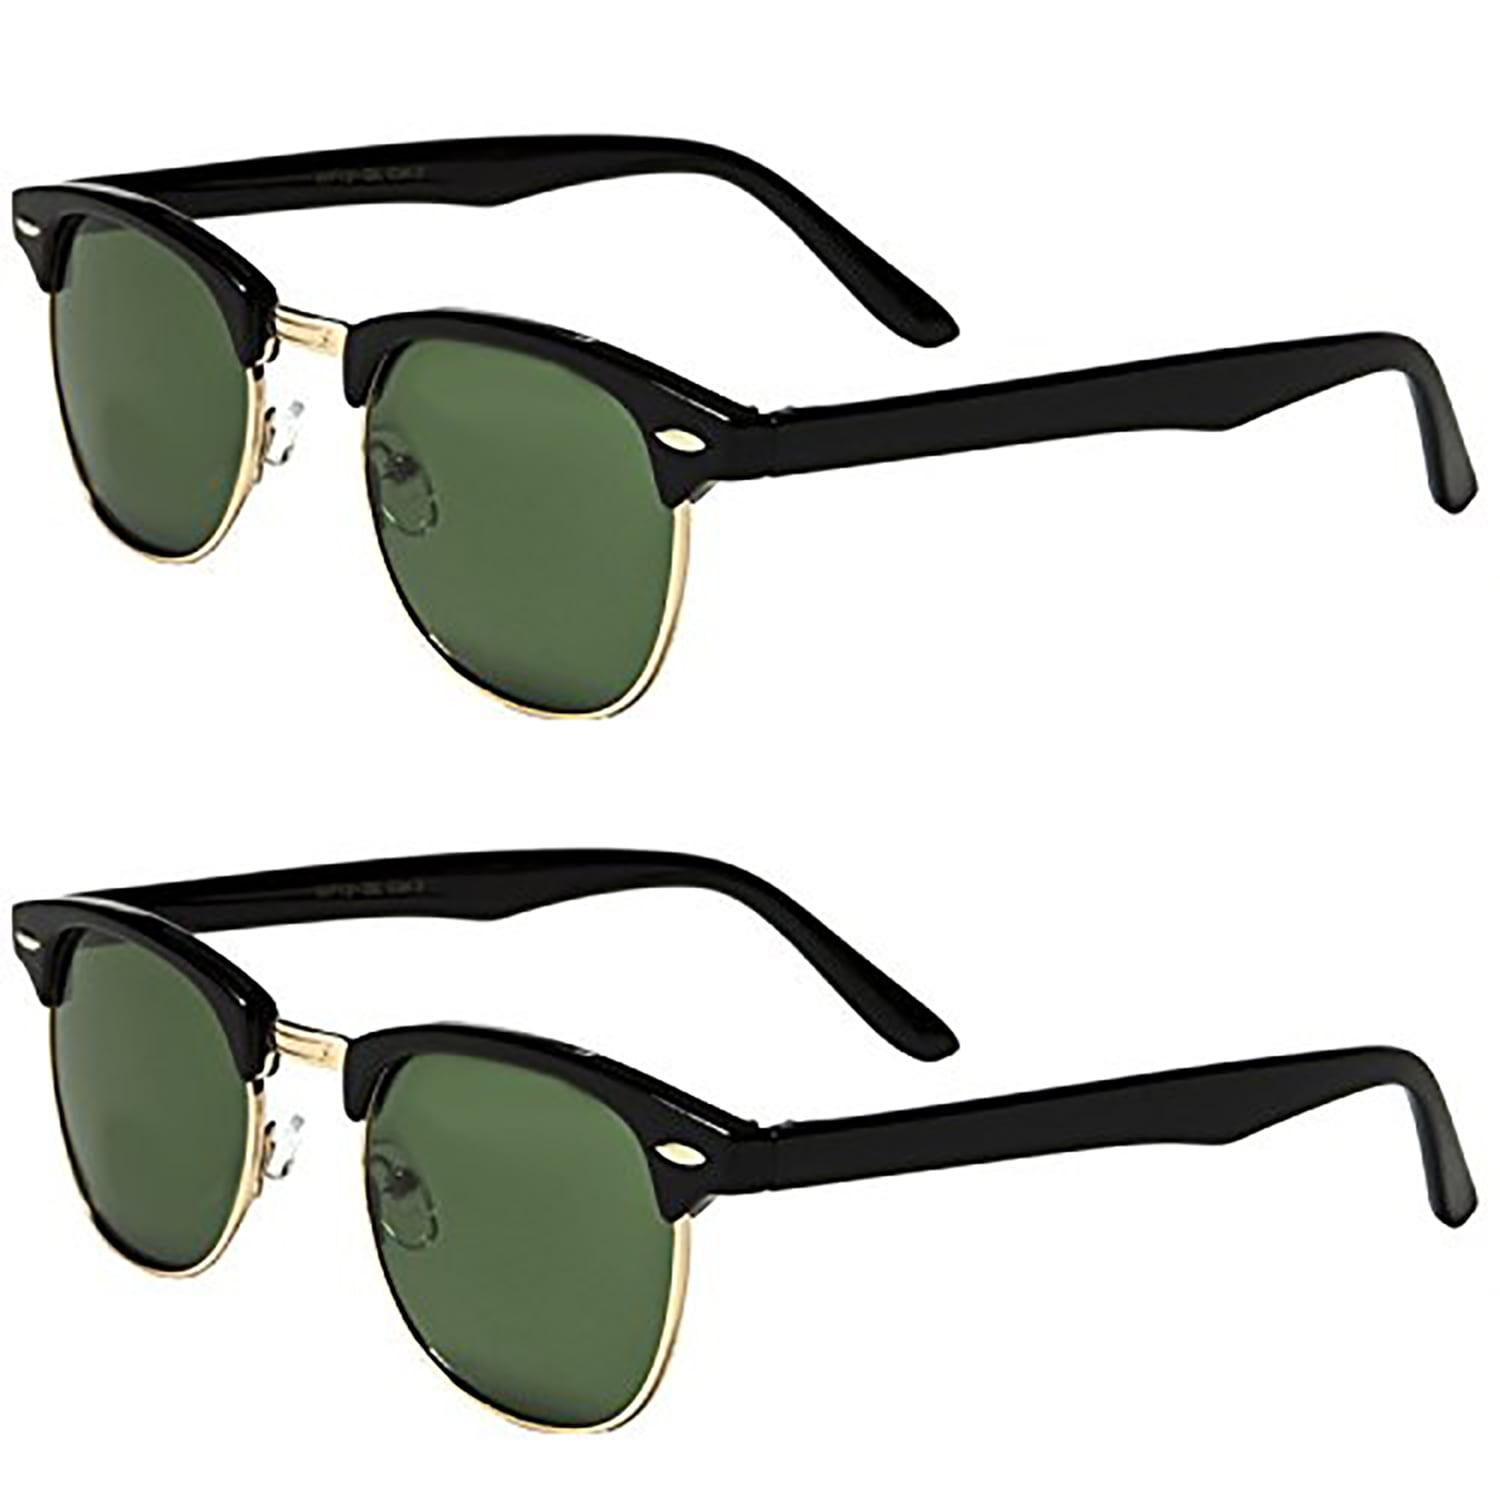 2b54fd77bb Shop Set of 2 Pairs - Classic Clubmaster Style Sunglasses - Free Shipping  On Orders Over  45 - Overstock.com - 19566457